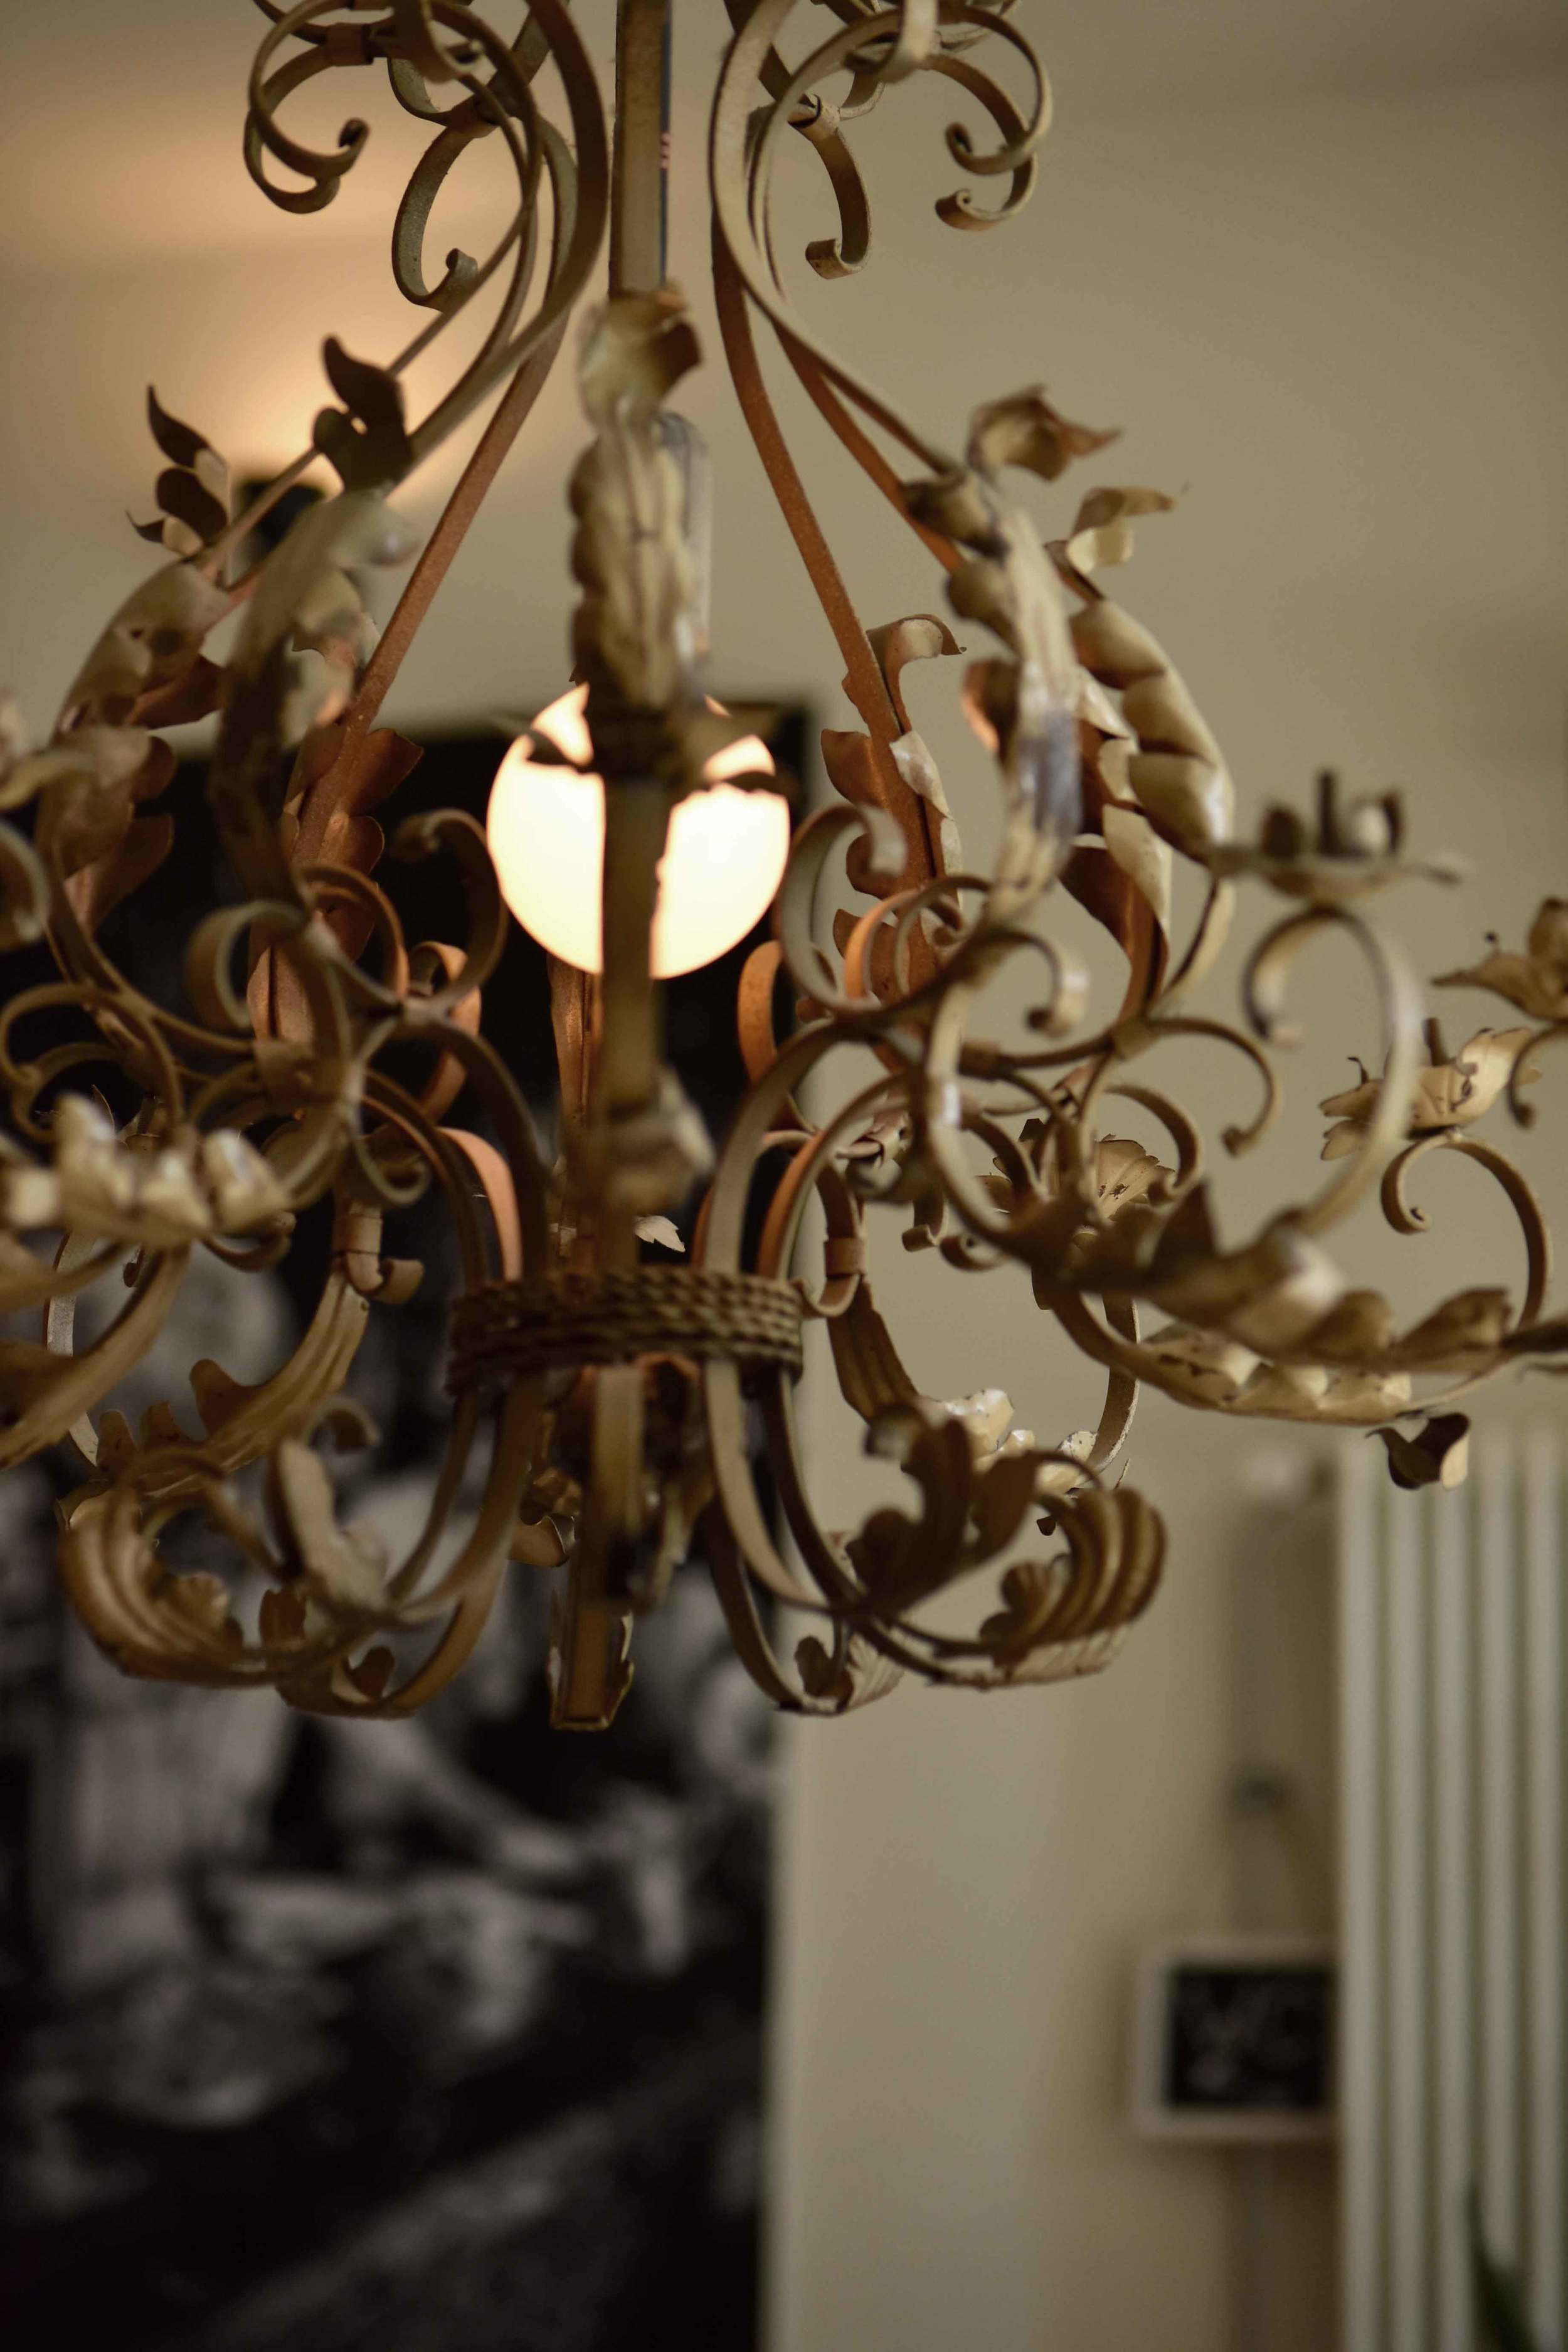 Lunch mood, chandelier light at a restaurant where we stopped for lunch, Ratingen, Germany. Image©sourcingstyle.com, Photo: Nicola Nolting